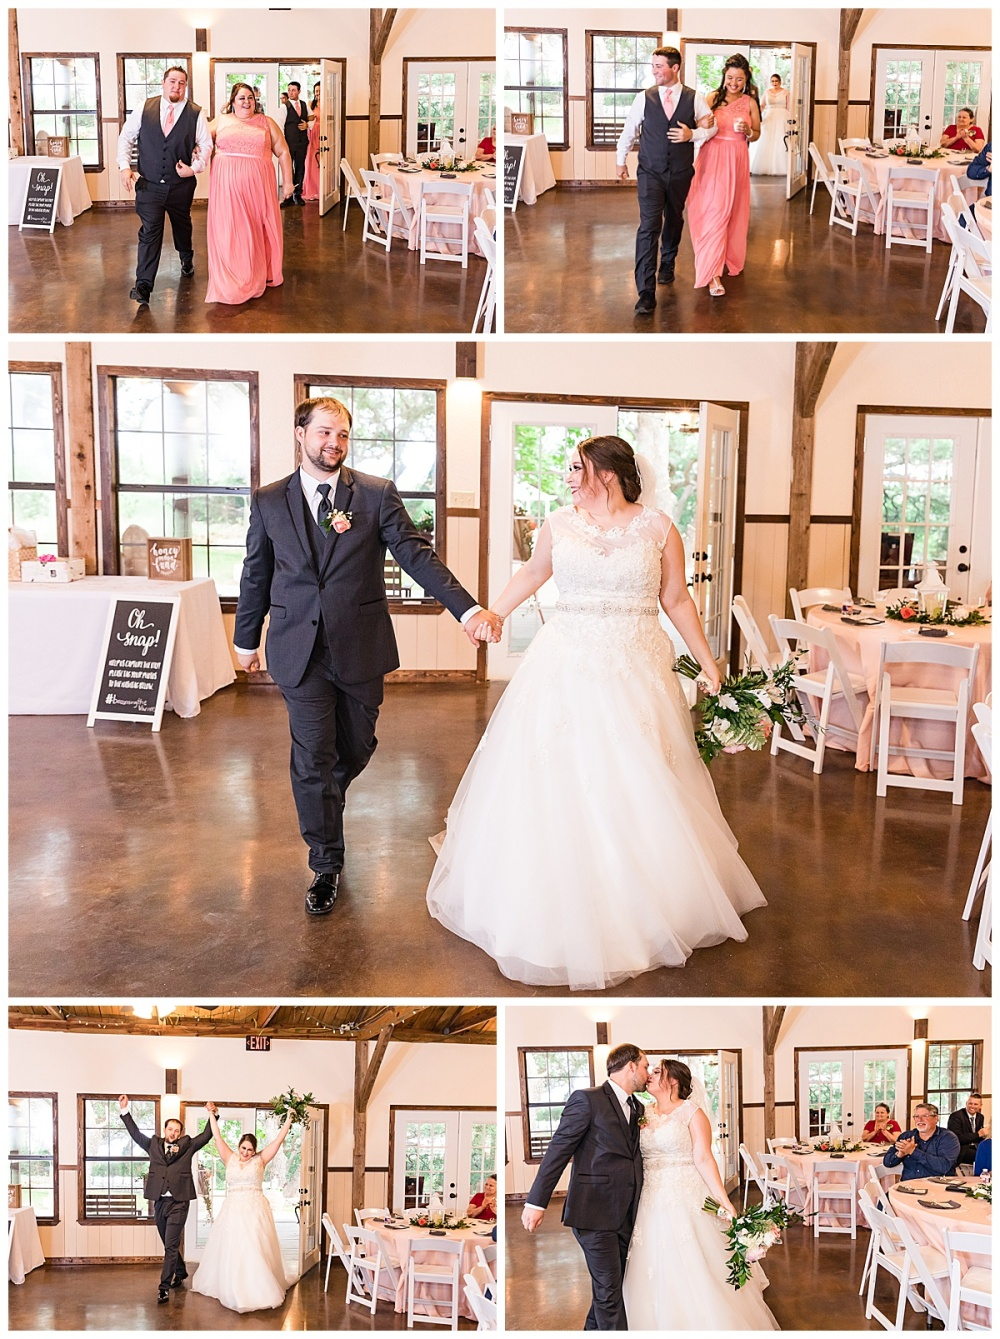 Michael-Tiffany-Wedding-New-Braunfels-Texas-Canyon-Lake-Cabins-and-Cottages-Carly-Barton-Photography_0042.jpg